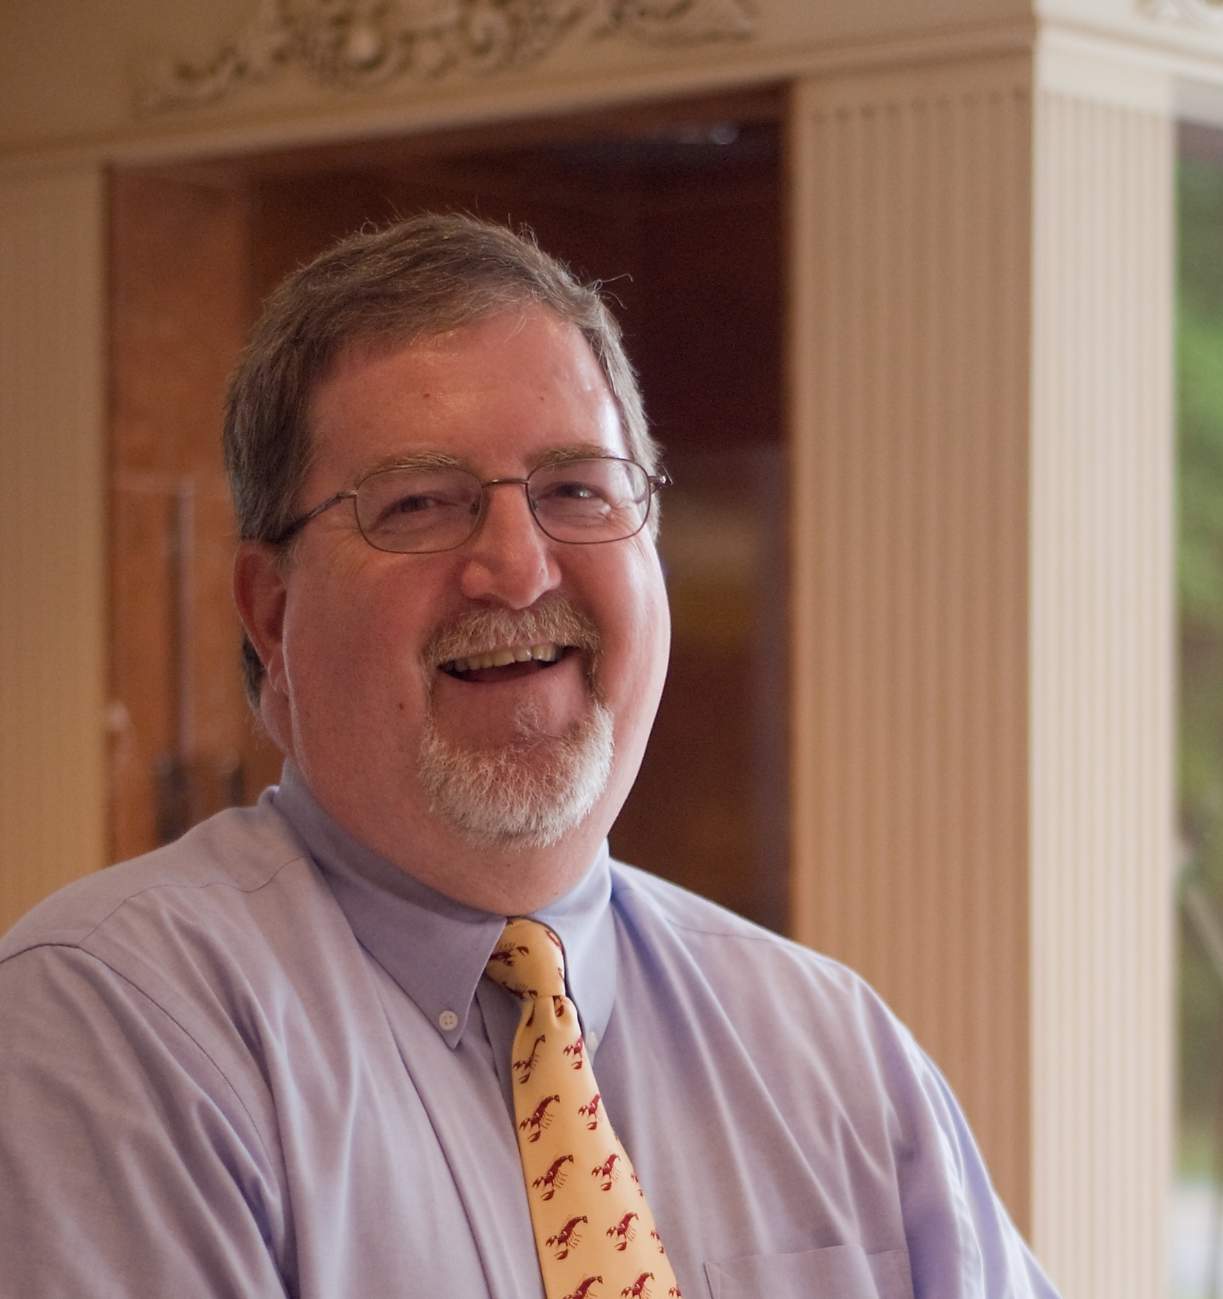 Douglas Leake, CKD  Kitchen and Bath Designer  Doug has been in the design business with us since 1986. He is a locally and nationally published, award-winning designer who also holds advanced degrees in business and education from Virginia Tech.   Read More